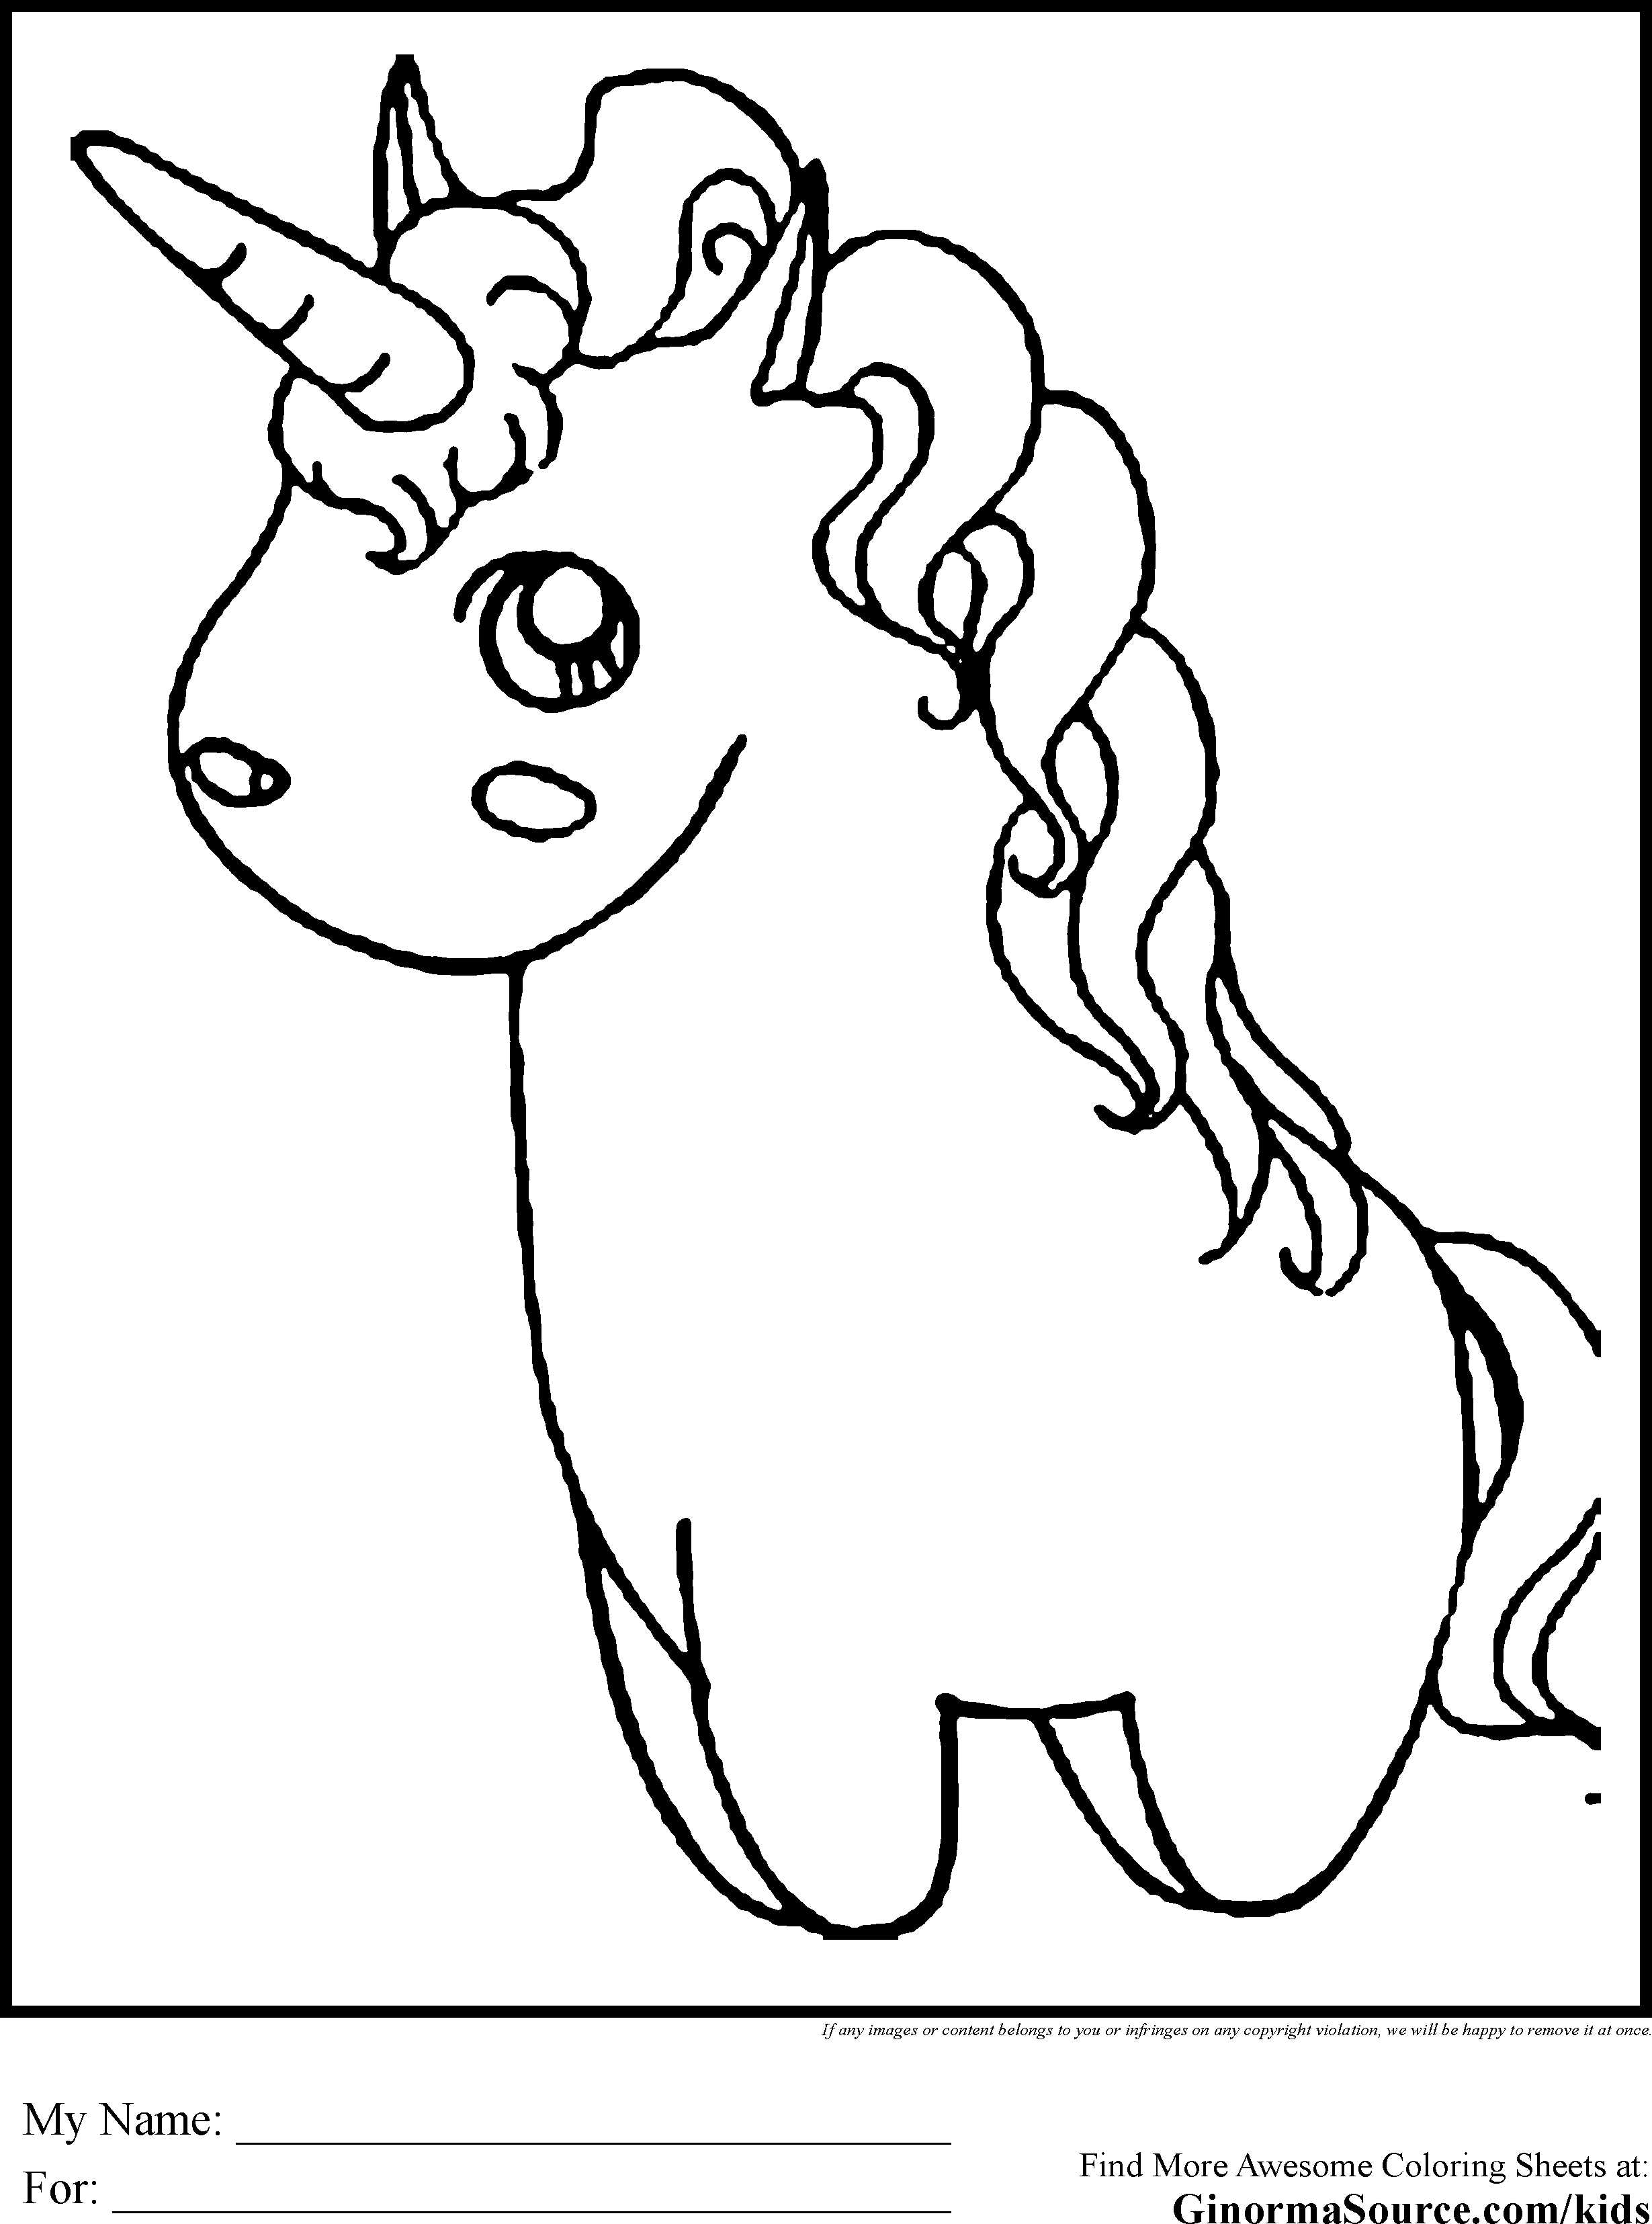 narwhal coloring page narwhal christmas coloring pages adult coloring books digi page narwhal coloring